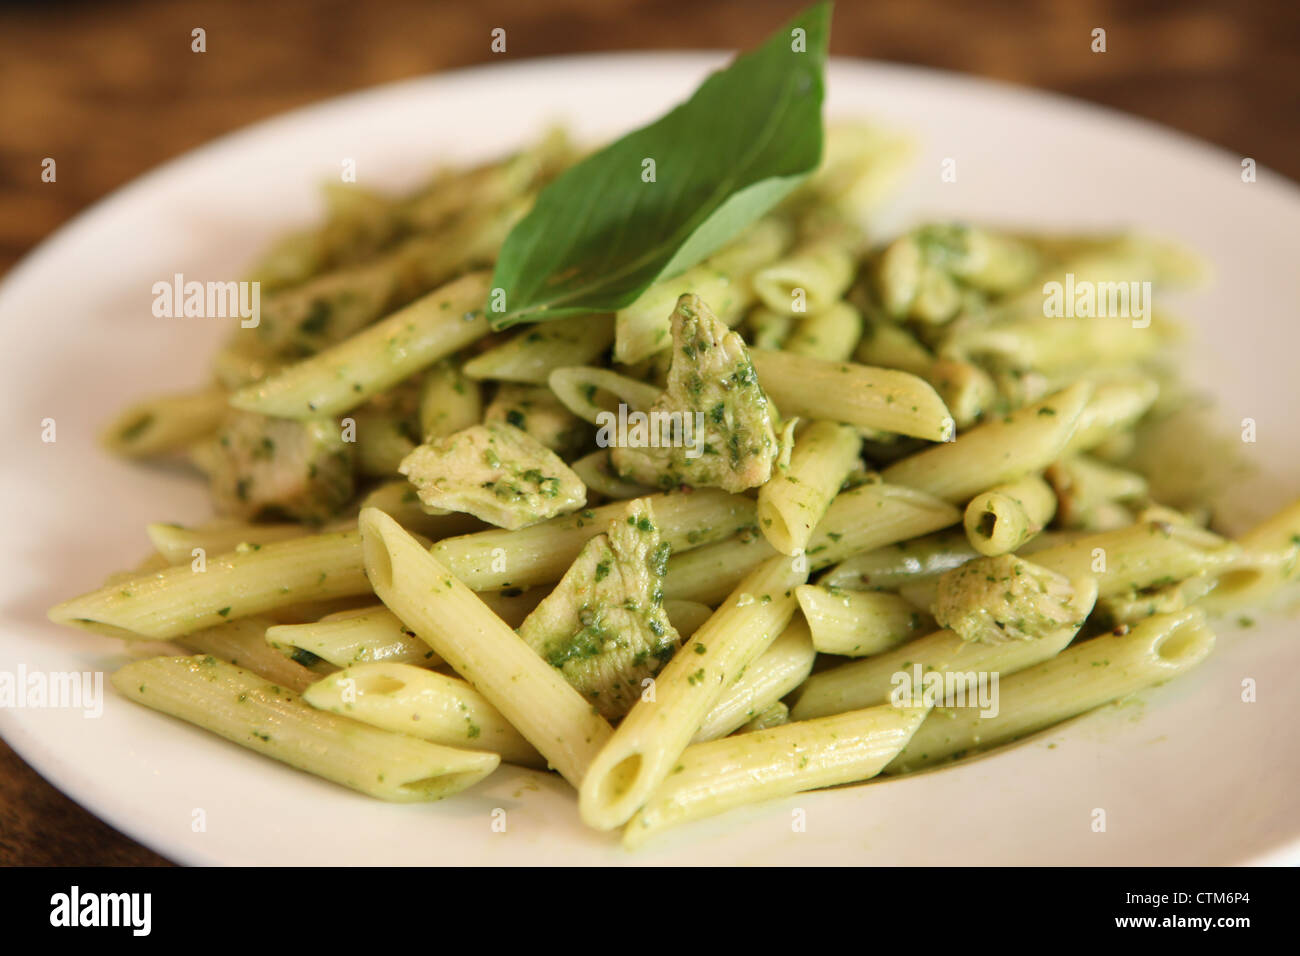 A serving of Penne pasta with herbs and cheese - Stock Image